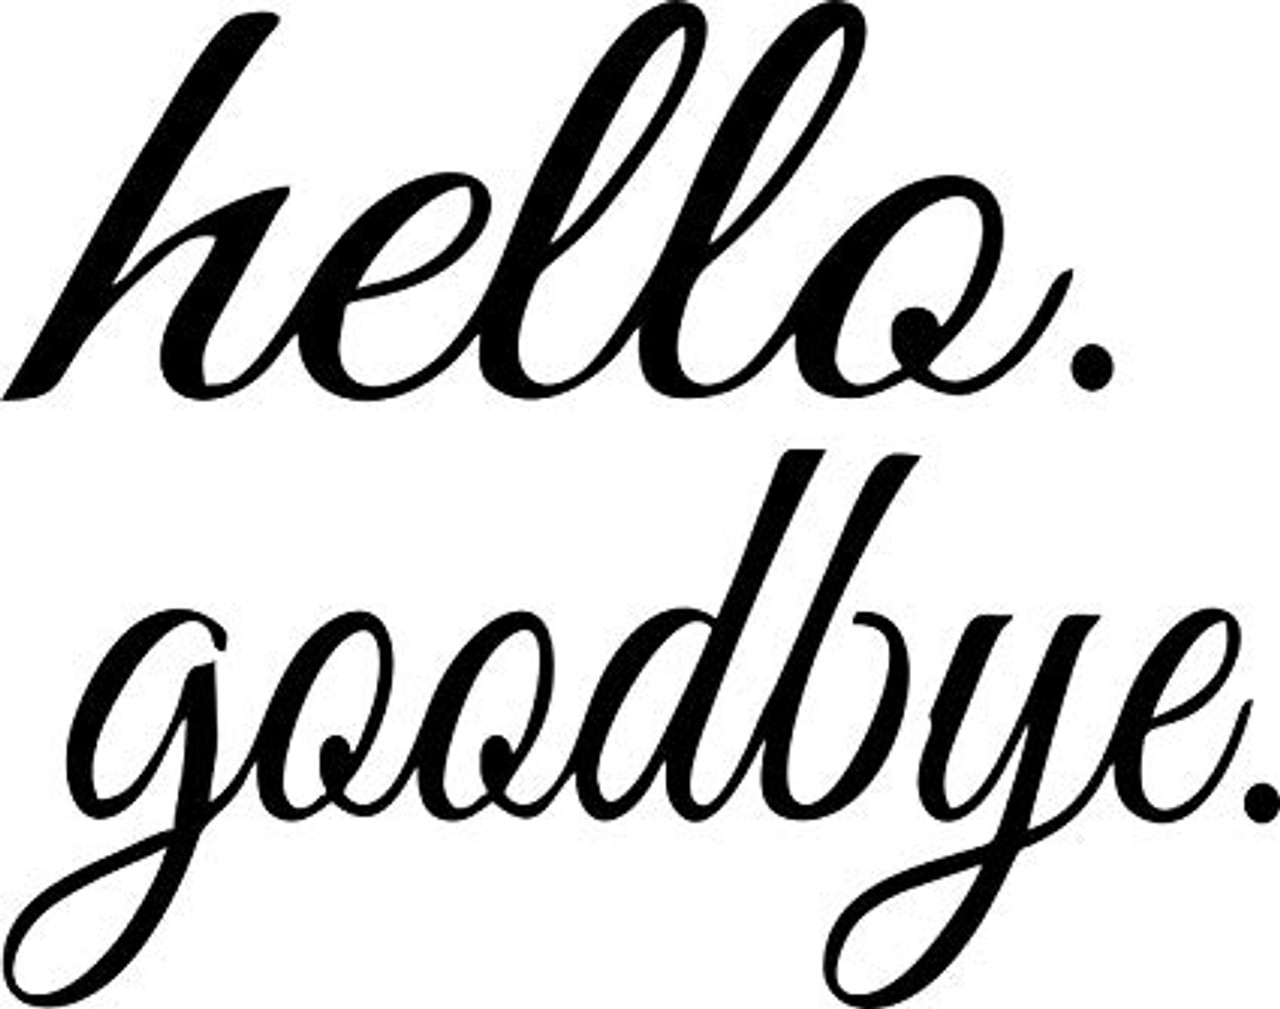 Hello/Goodbye